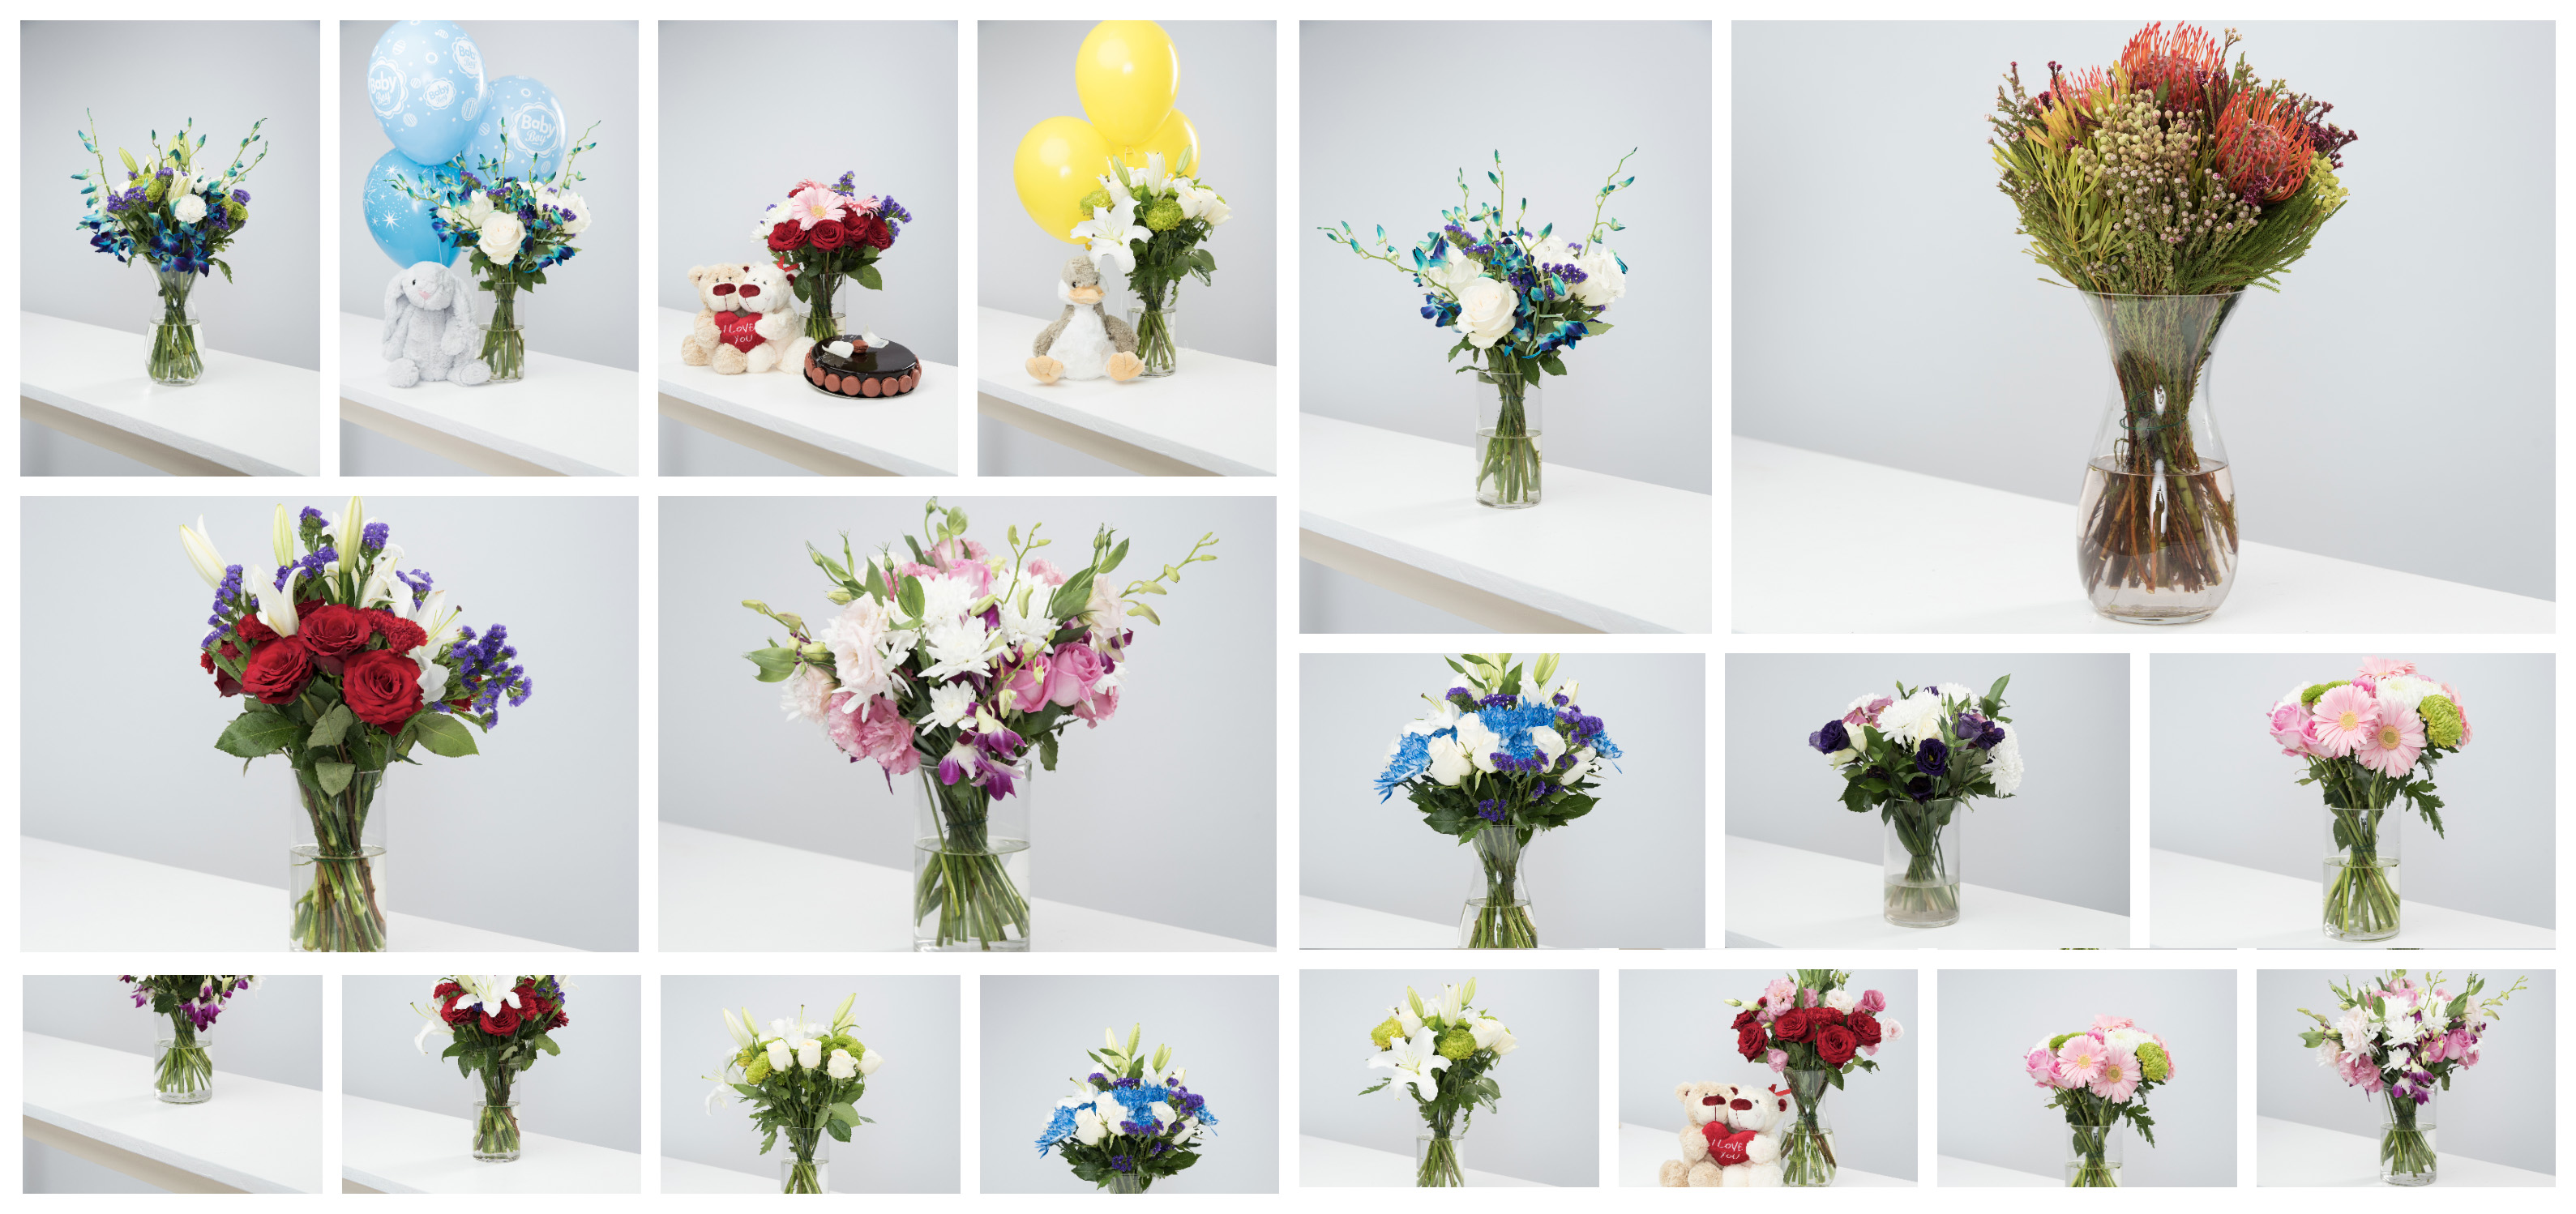 Flower delivery dubai flower shop dubai free flower delivery have a look at our stunning new floral vase creations izmirmasajfo